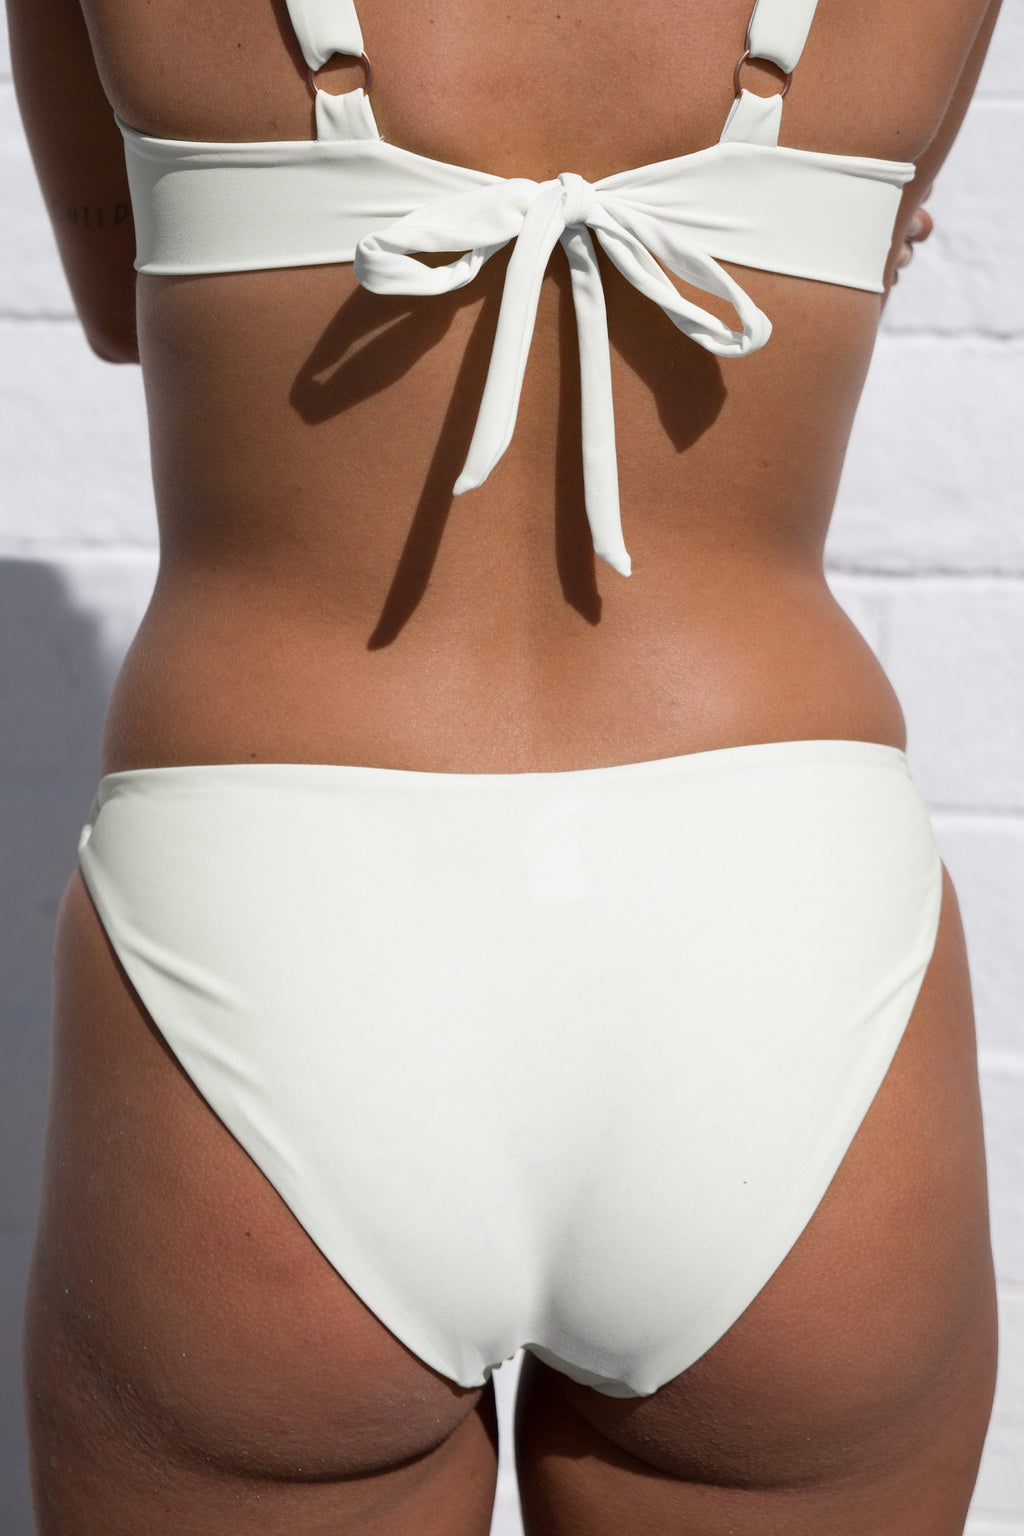 Ete Swimwear Ete X Matilda - Seaside Bottoms (Shell) - Nomads Cove